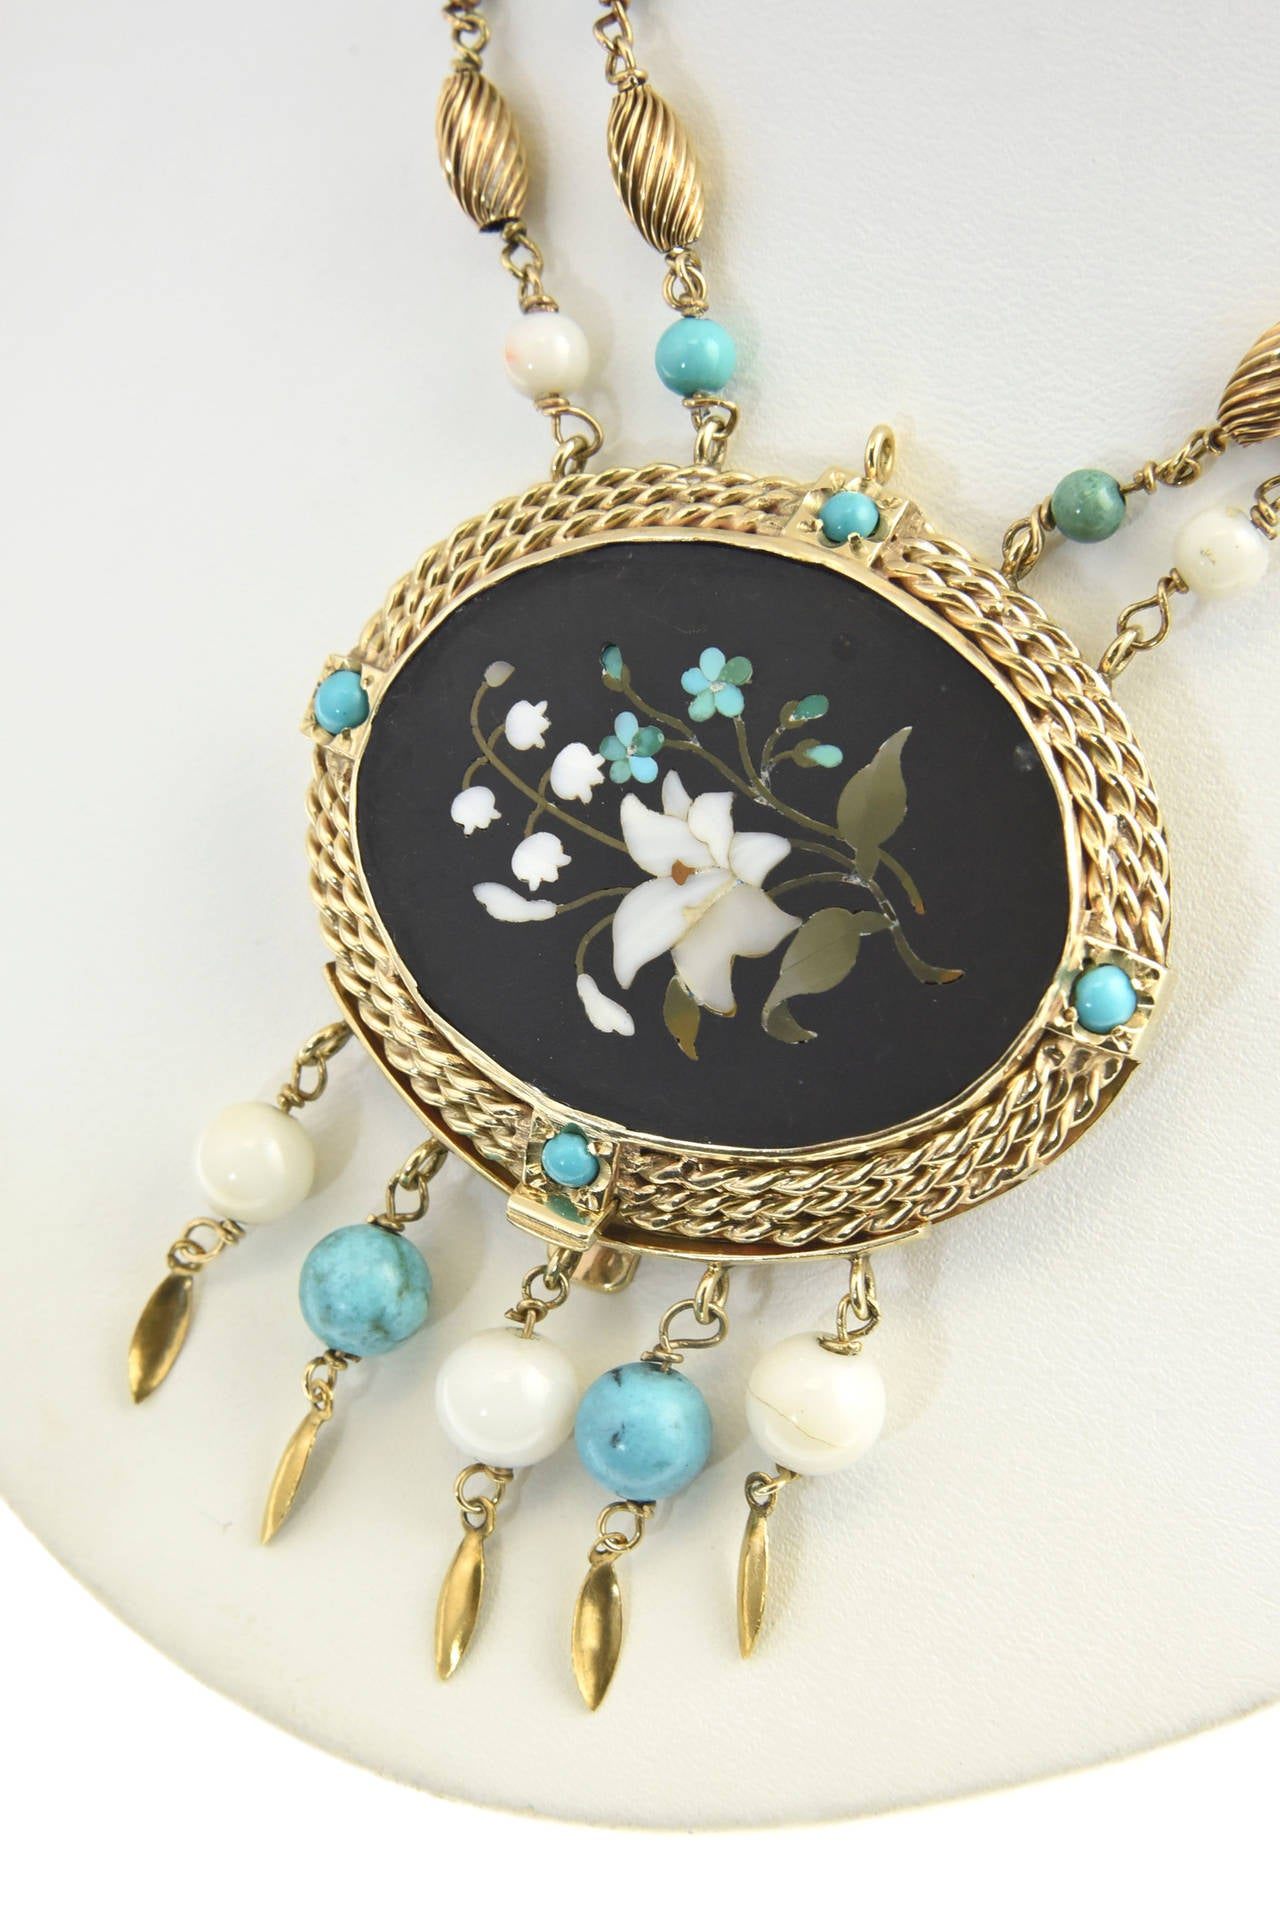 Cleopatra Inspired Turquoise and Gold Necklace with Victorian Pietra Dura Clasp 8